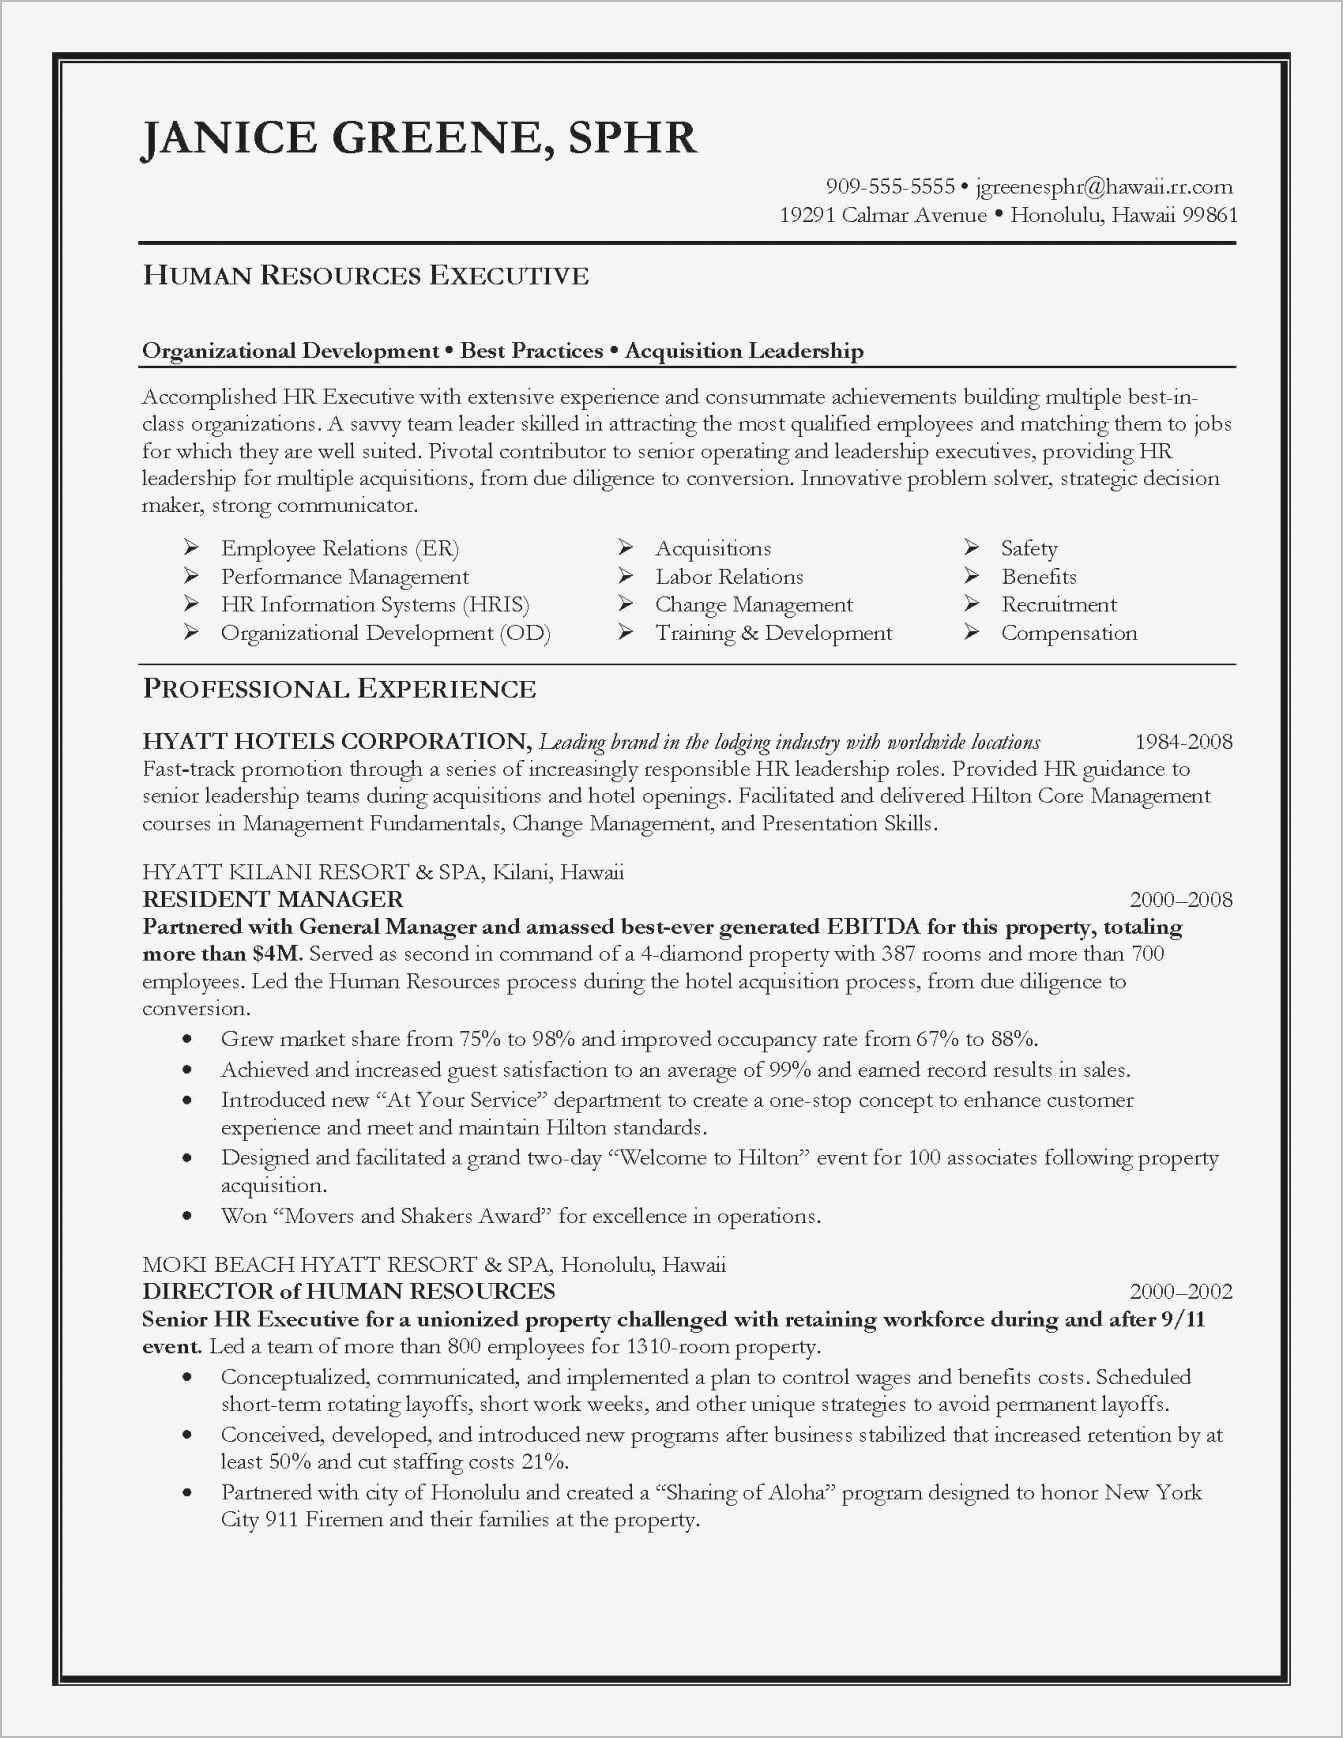 Words to Describe Yourself Resume - Words to Describe Yourself A Resume